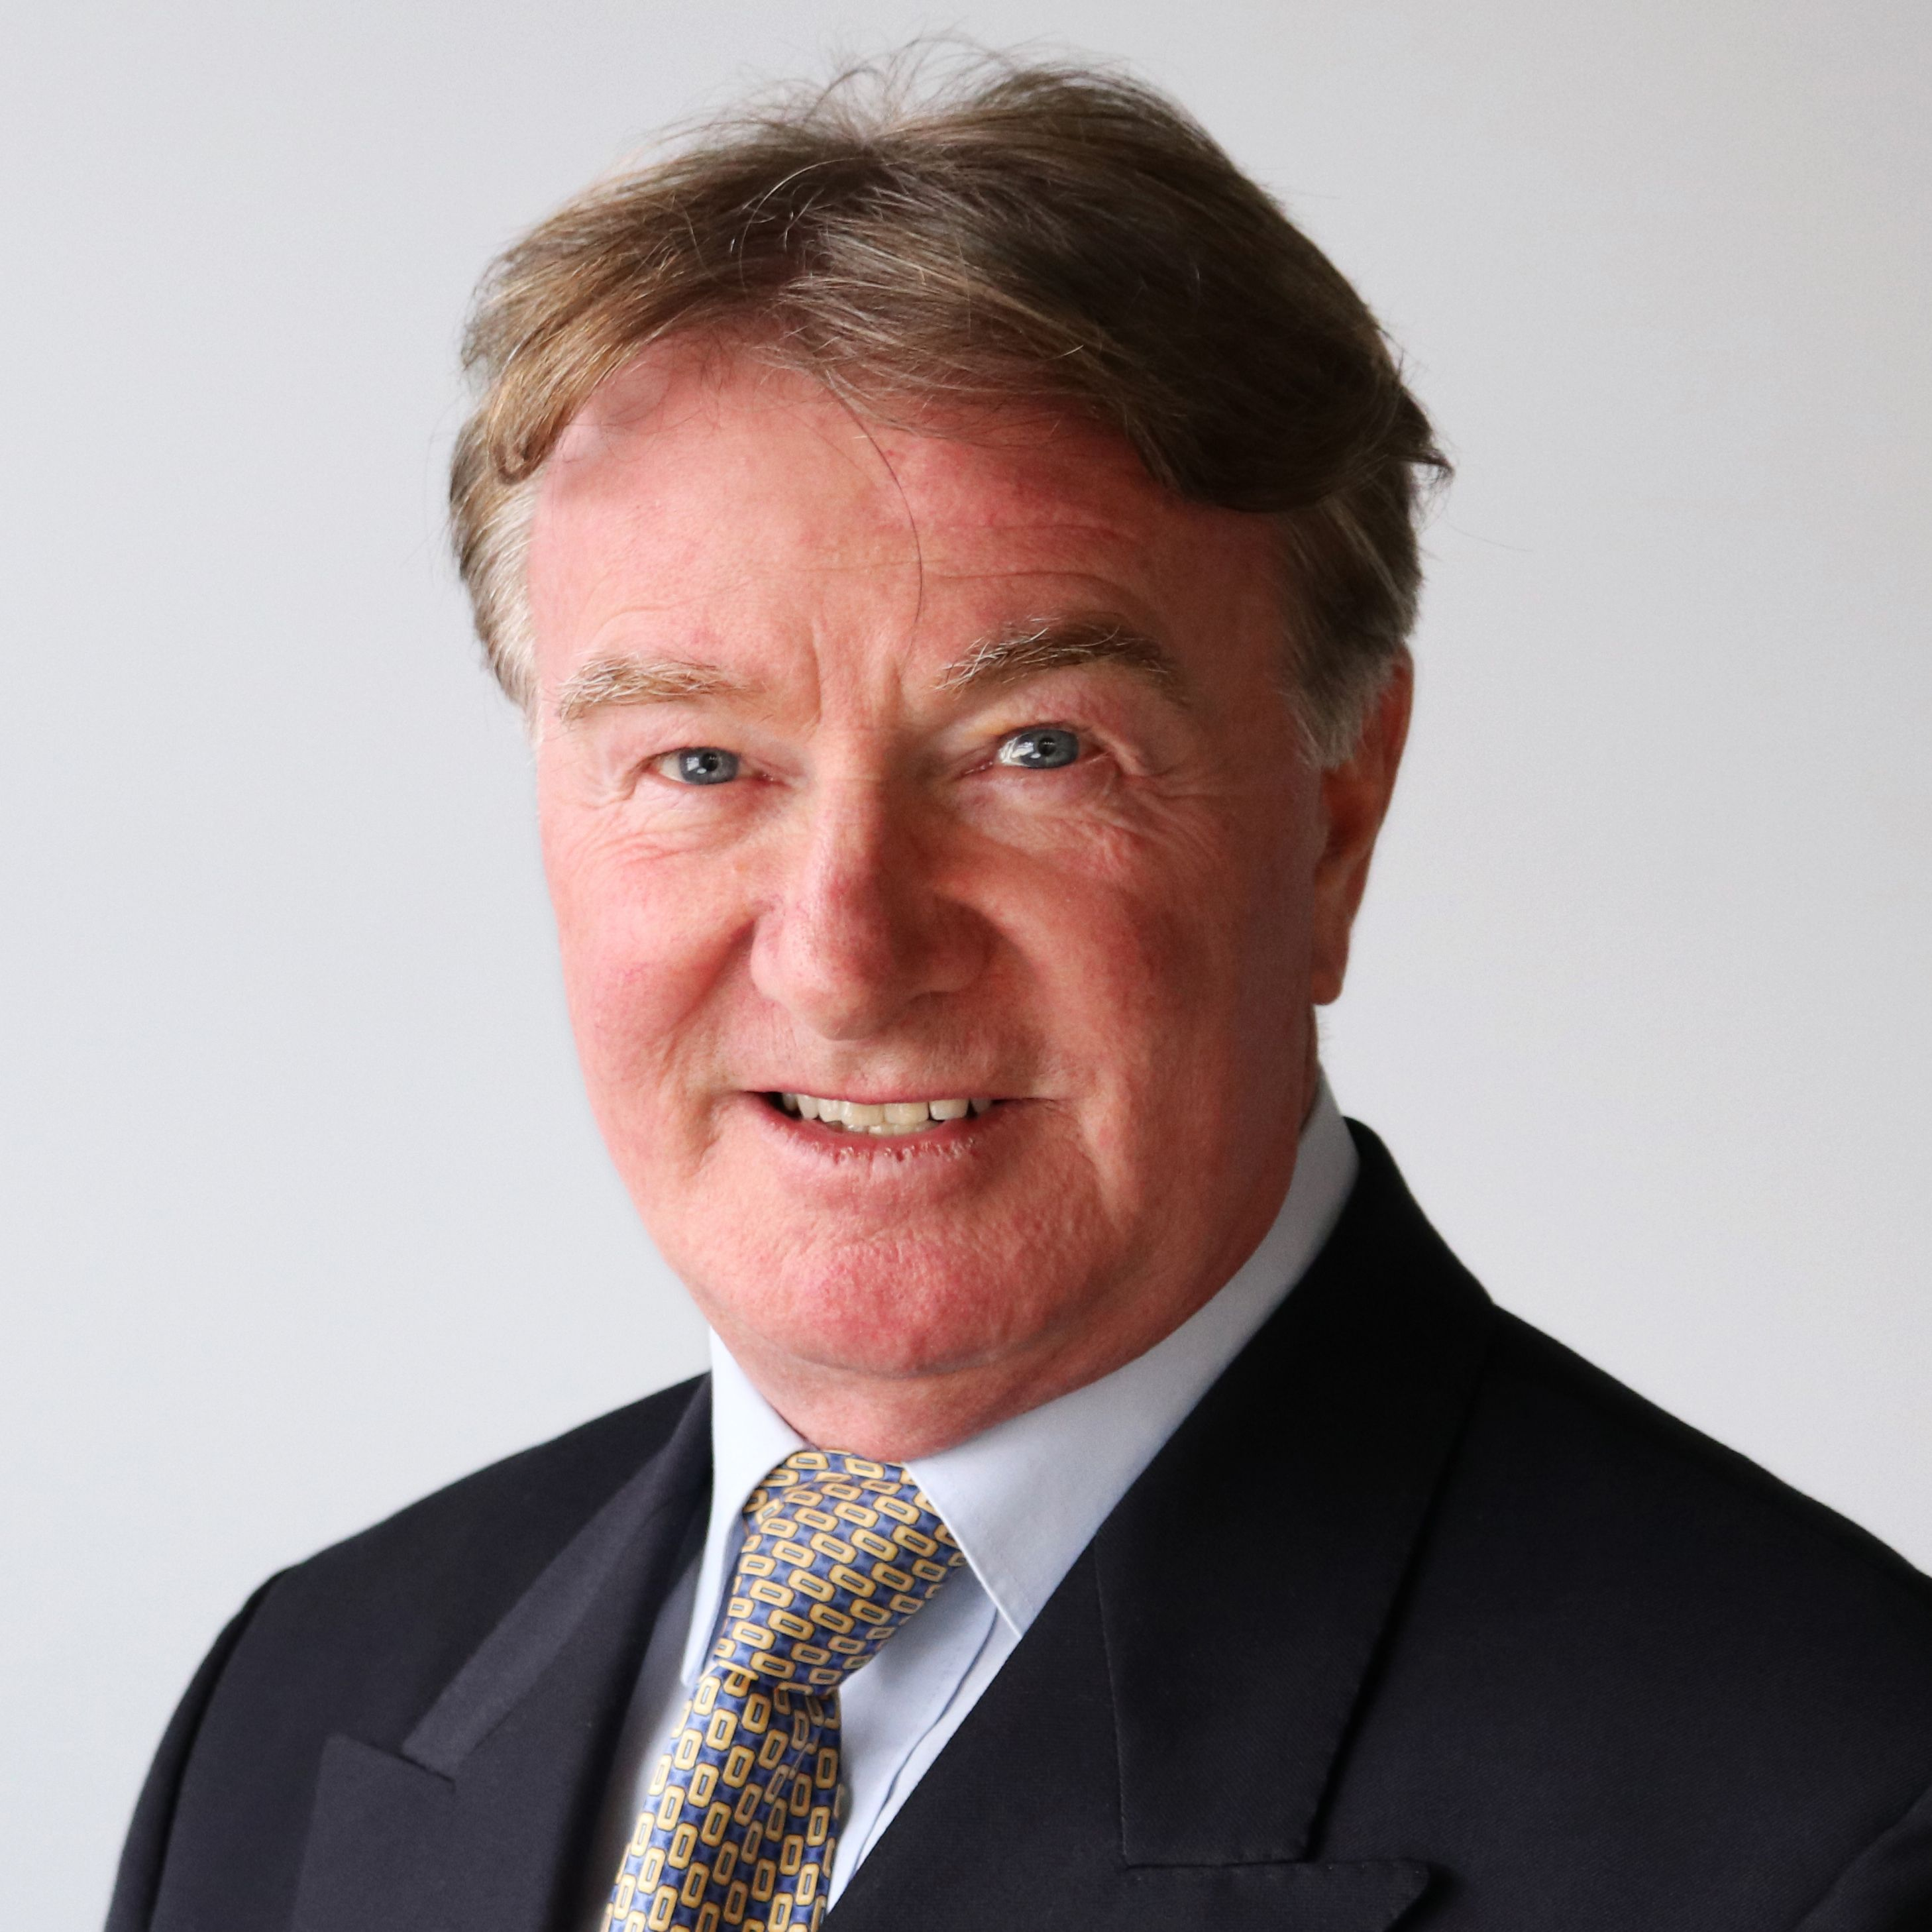 Profile photo of Barry Jewson, Fleet Technical General Manager at MMA Offshore Limited